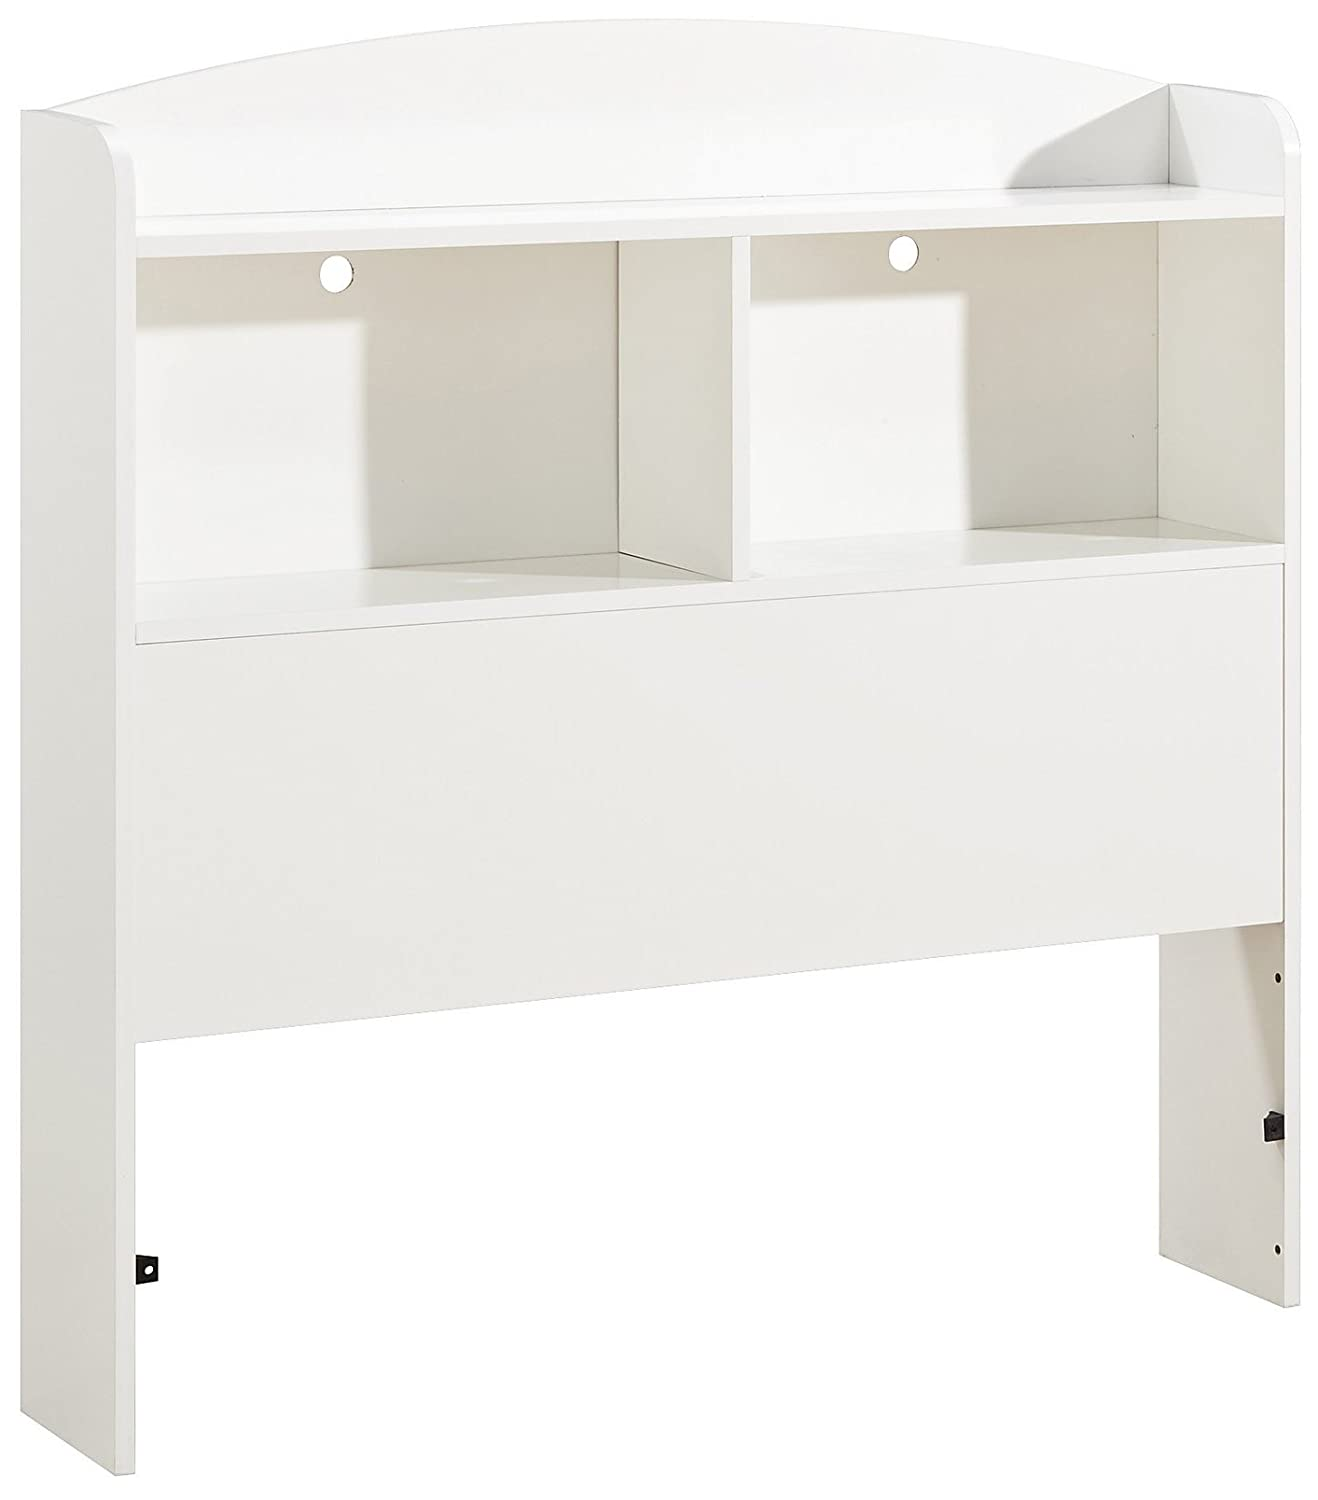 South Shore Furniture Logik Collection, Bookcase Headboard, Pure White 3360098 SS3360-098